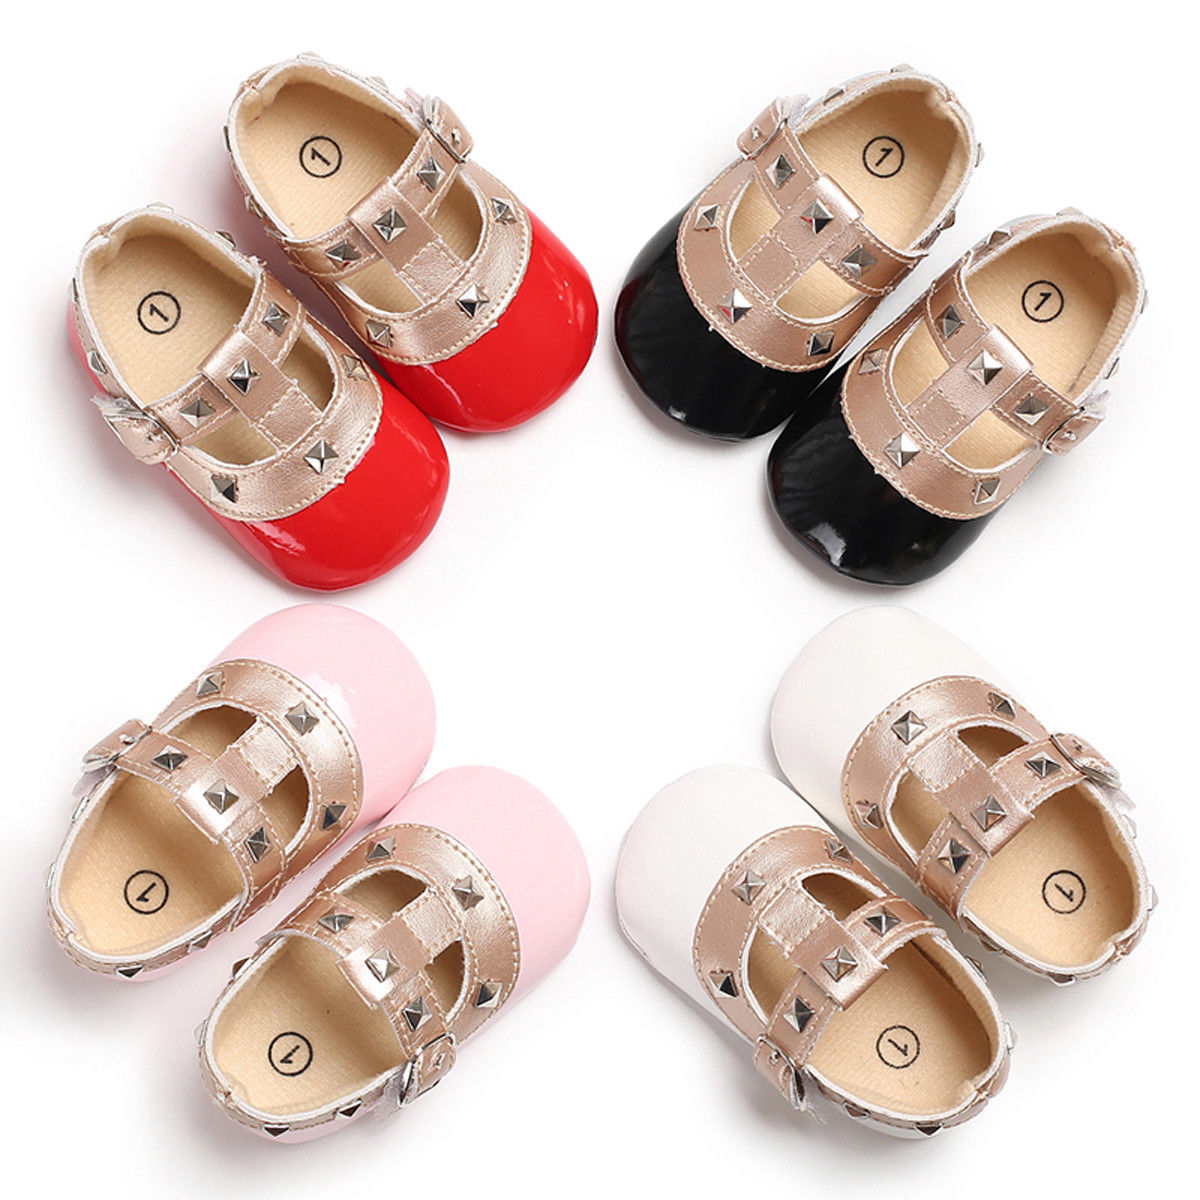 Infant Baby Girls Flower Decor Soft Sole Prewalker Toddler Princess Shoes Butterfly Iron Baby Shoes